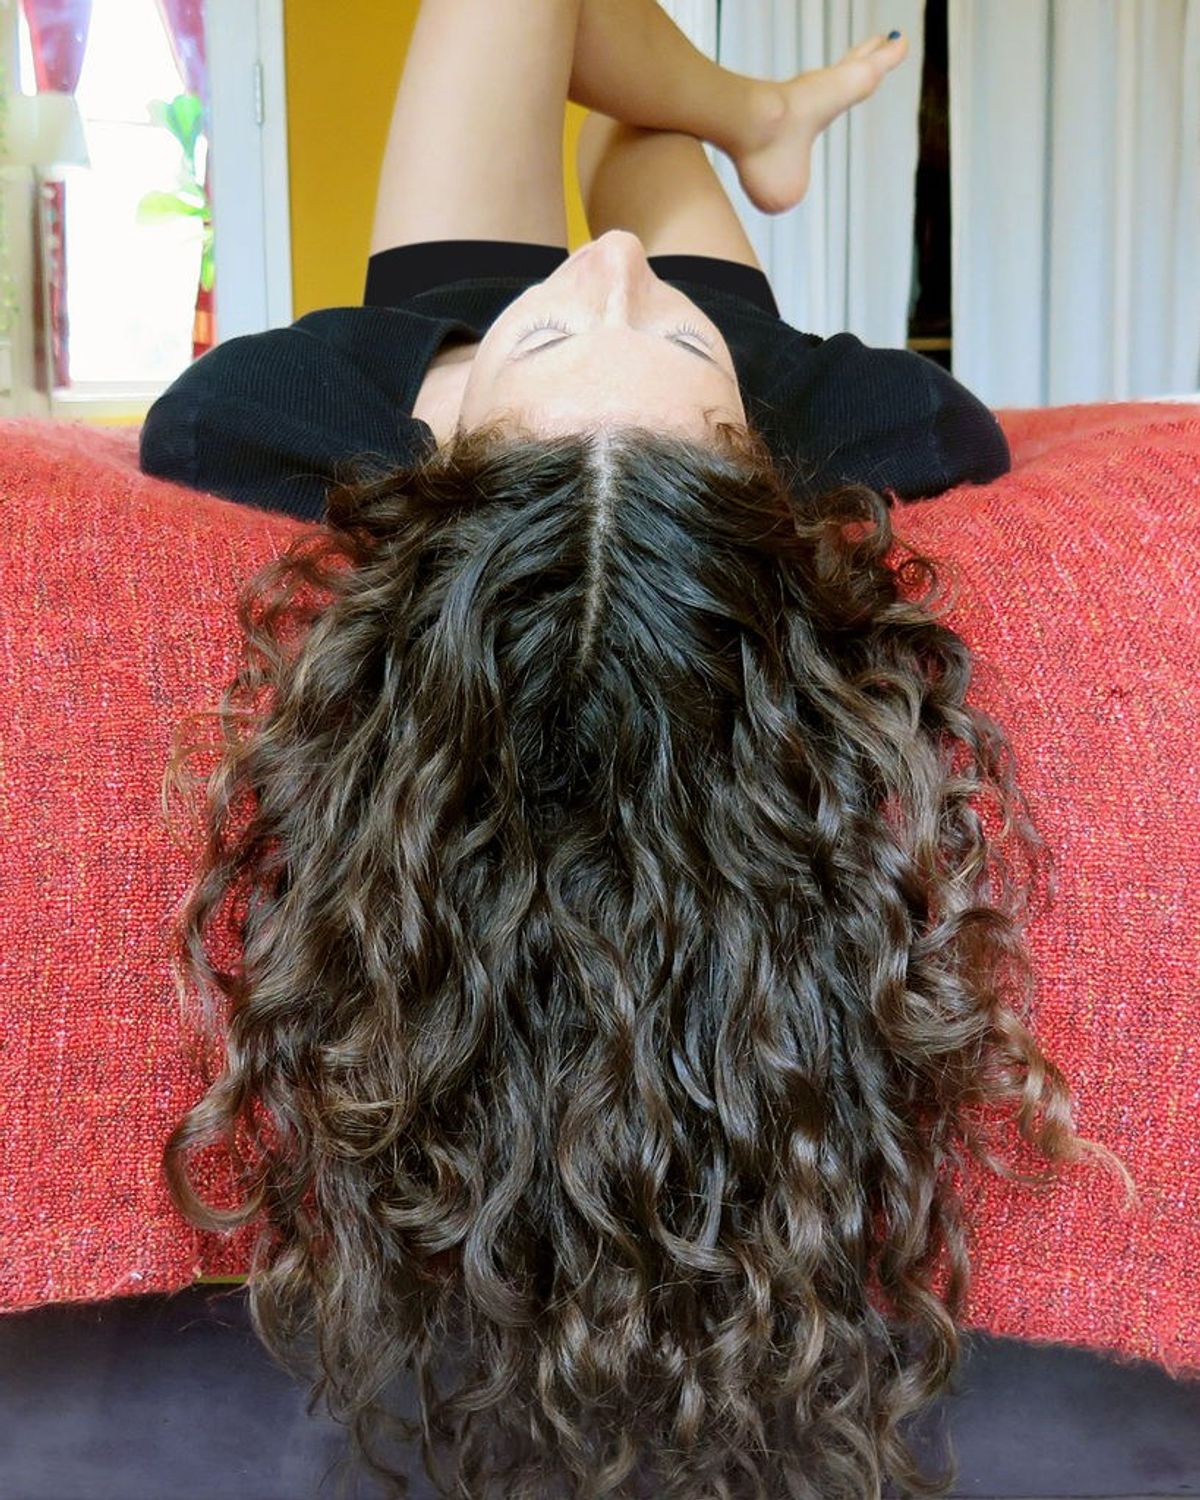 25 Struggles Of Curly Hair Girls